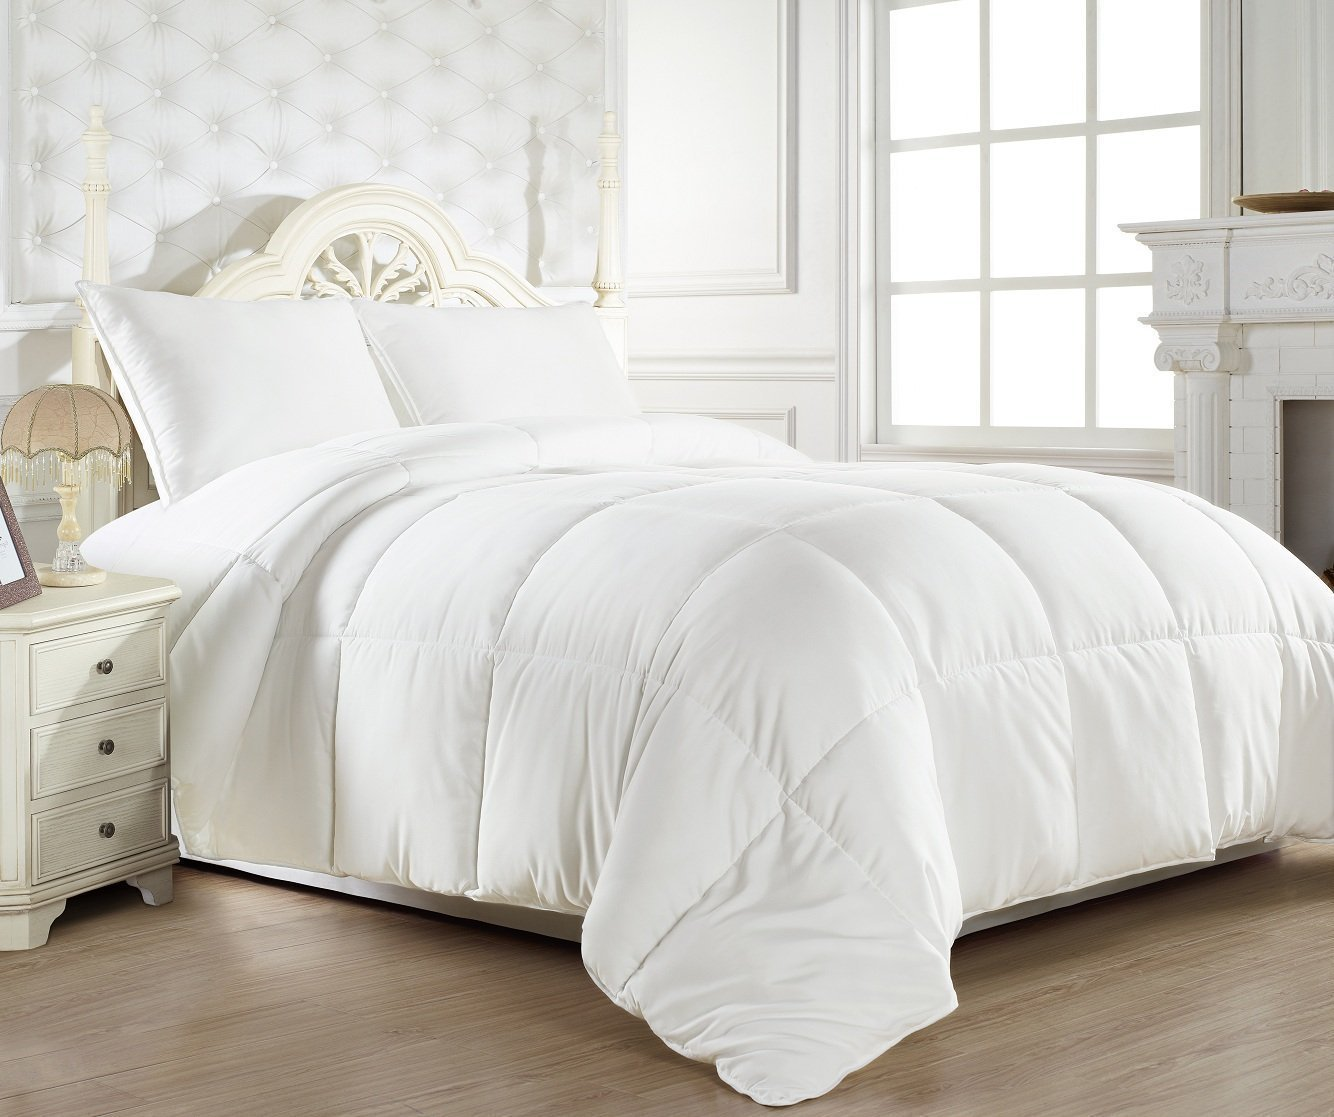 duvet house big comforter fluffy white with puffy blanket ideas